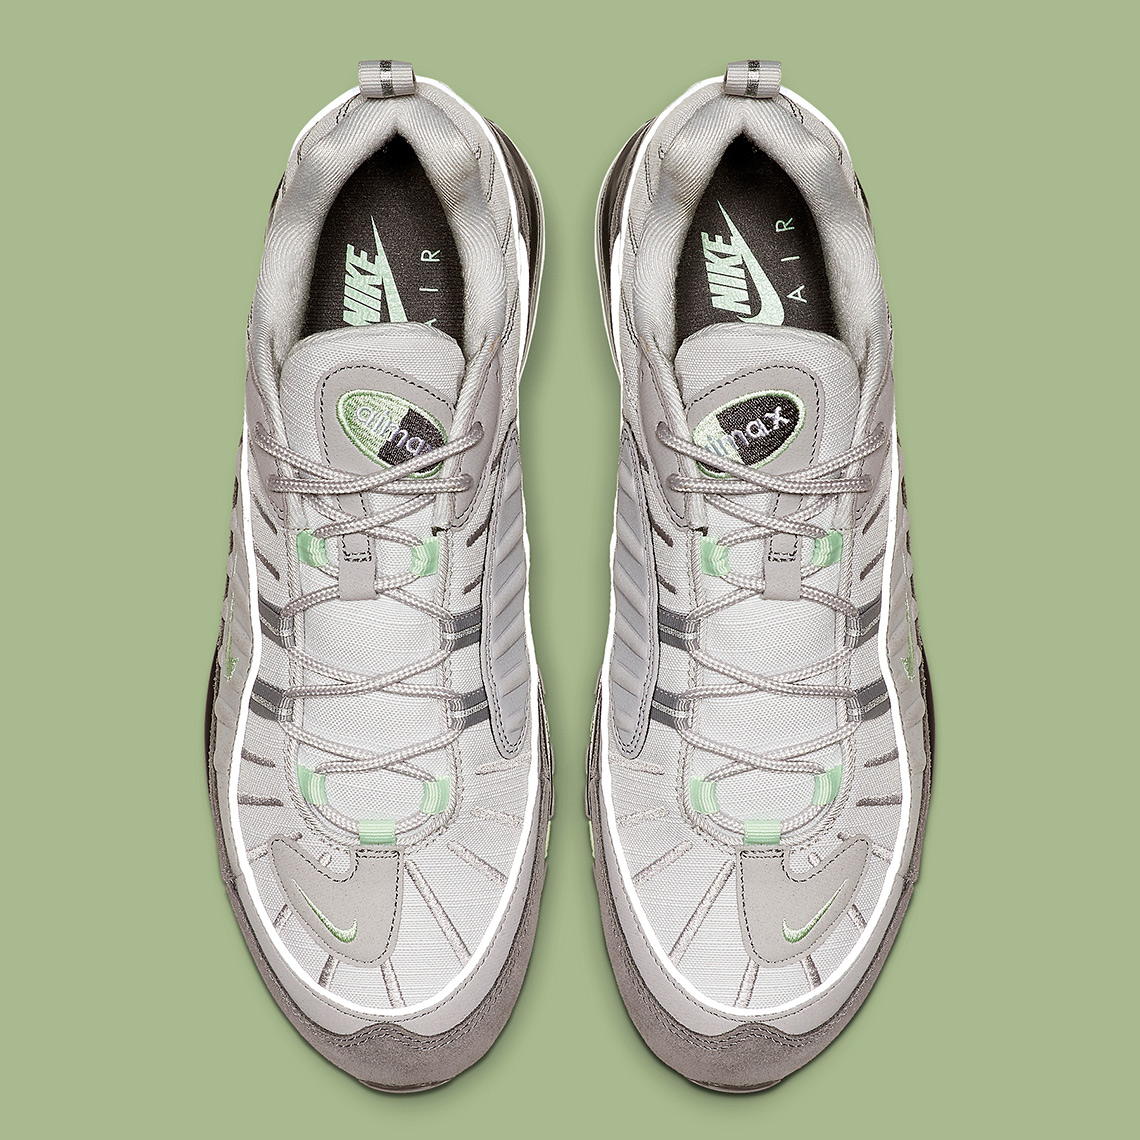 premium selection 7971b 1a981 Nike Air Max 98. Release Date  May 10th, 2019  160. Color  Vast Grey Fresh  Mint-Atmosphere Grey Style Code  640744-011. Advertisement. Advertisement